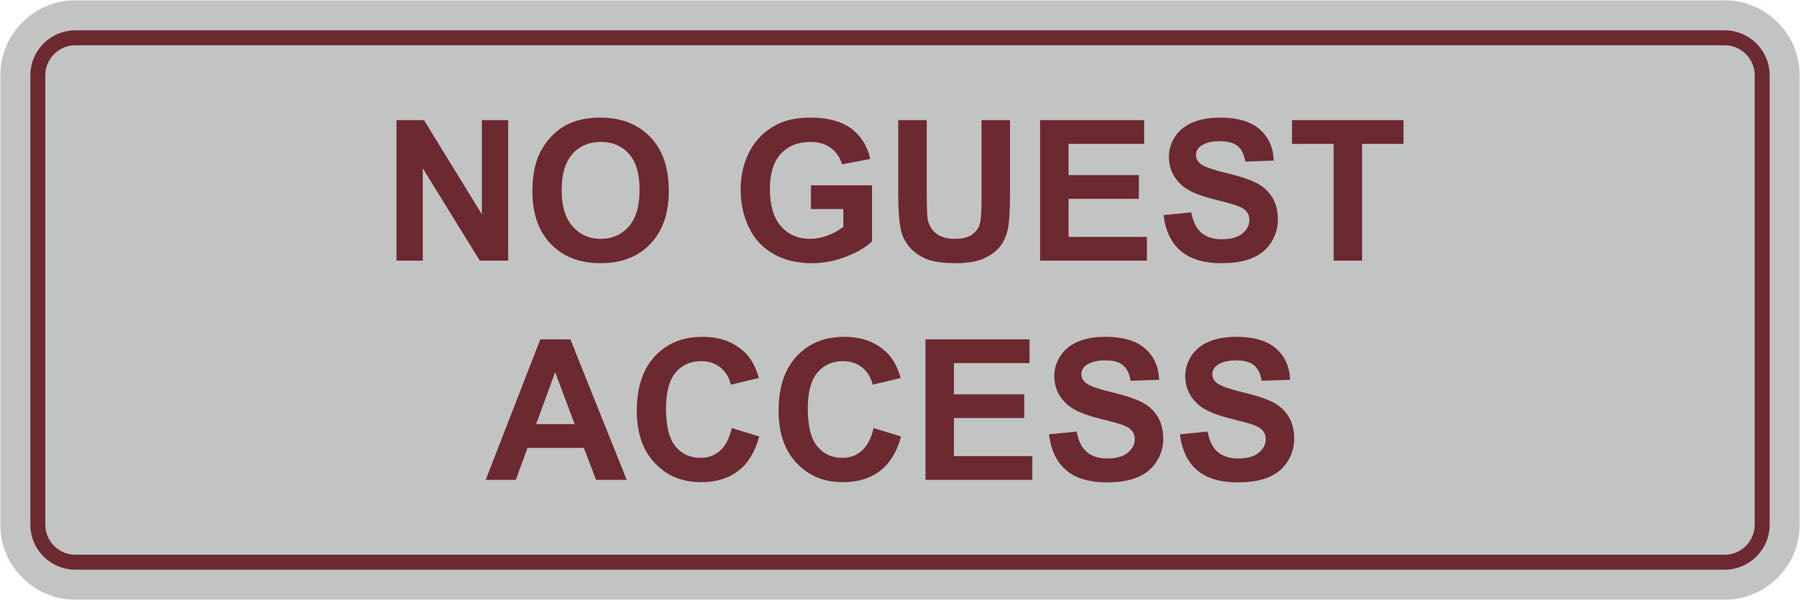 Signs ByLITA Standard No Guest Access Sign